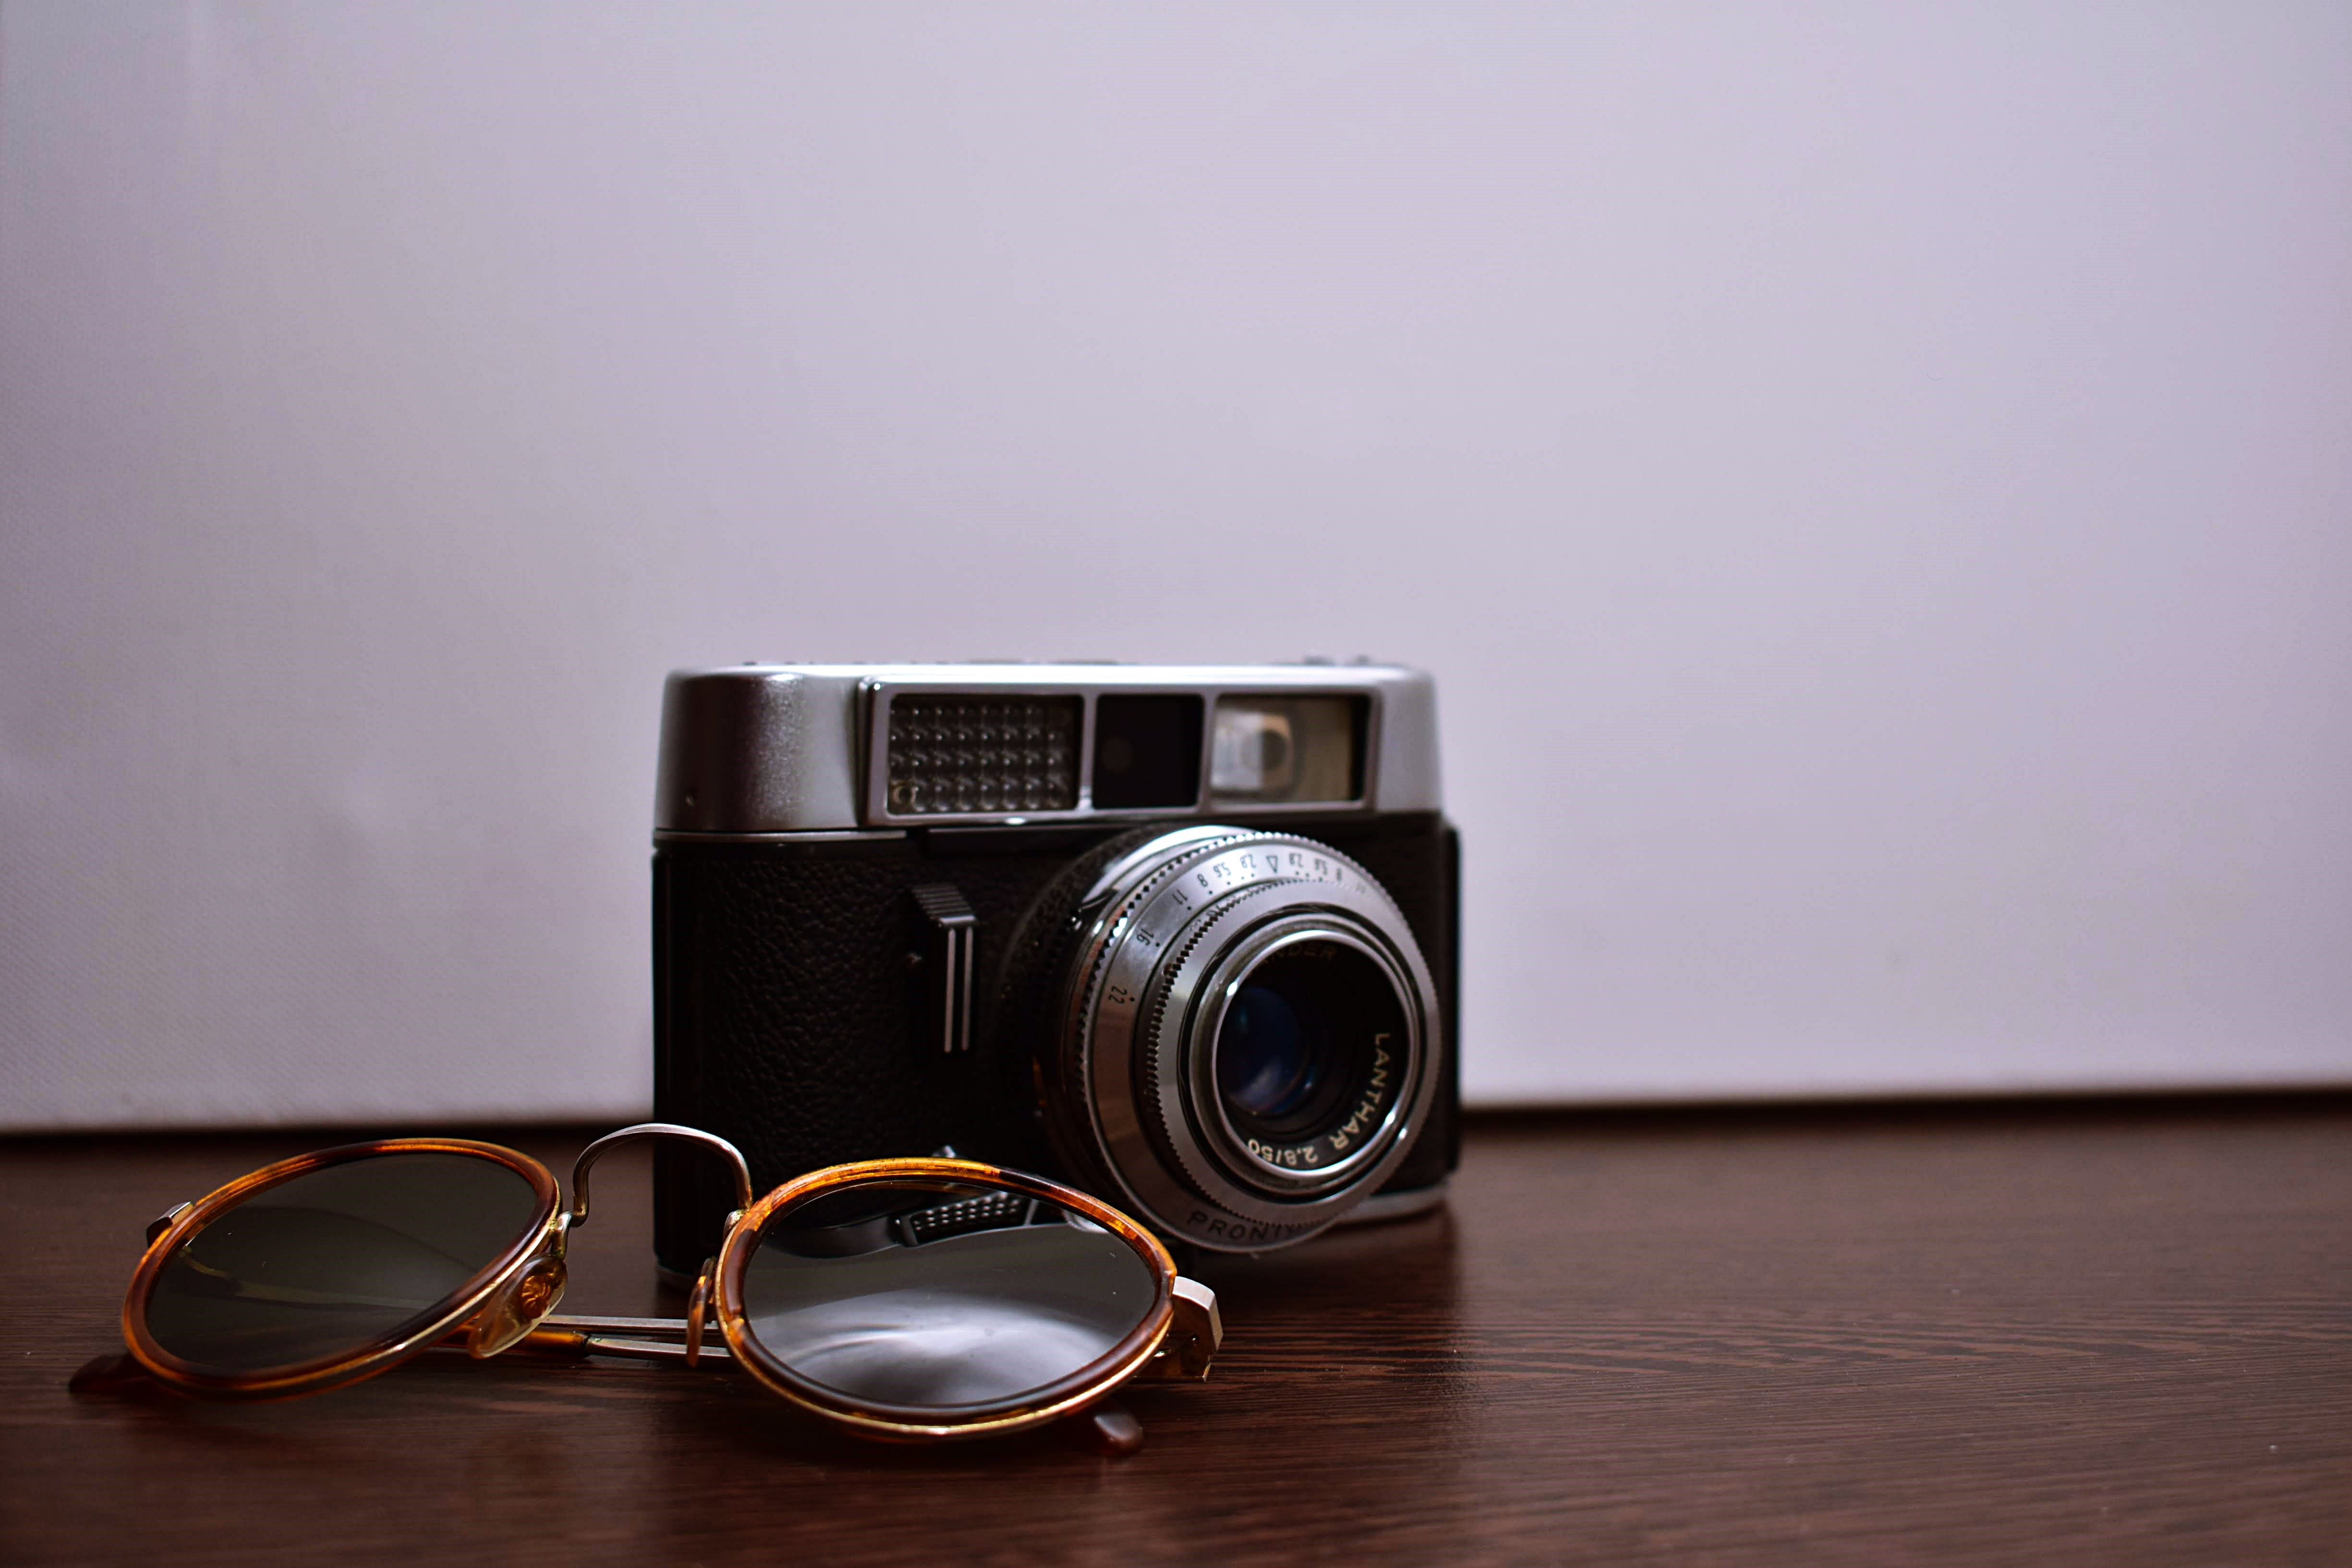 Silver and Black Dslr Camera With Brown Sunglasses on Brown Wooden Surface